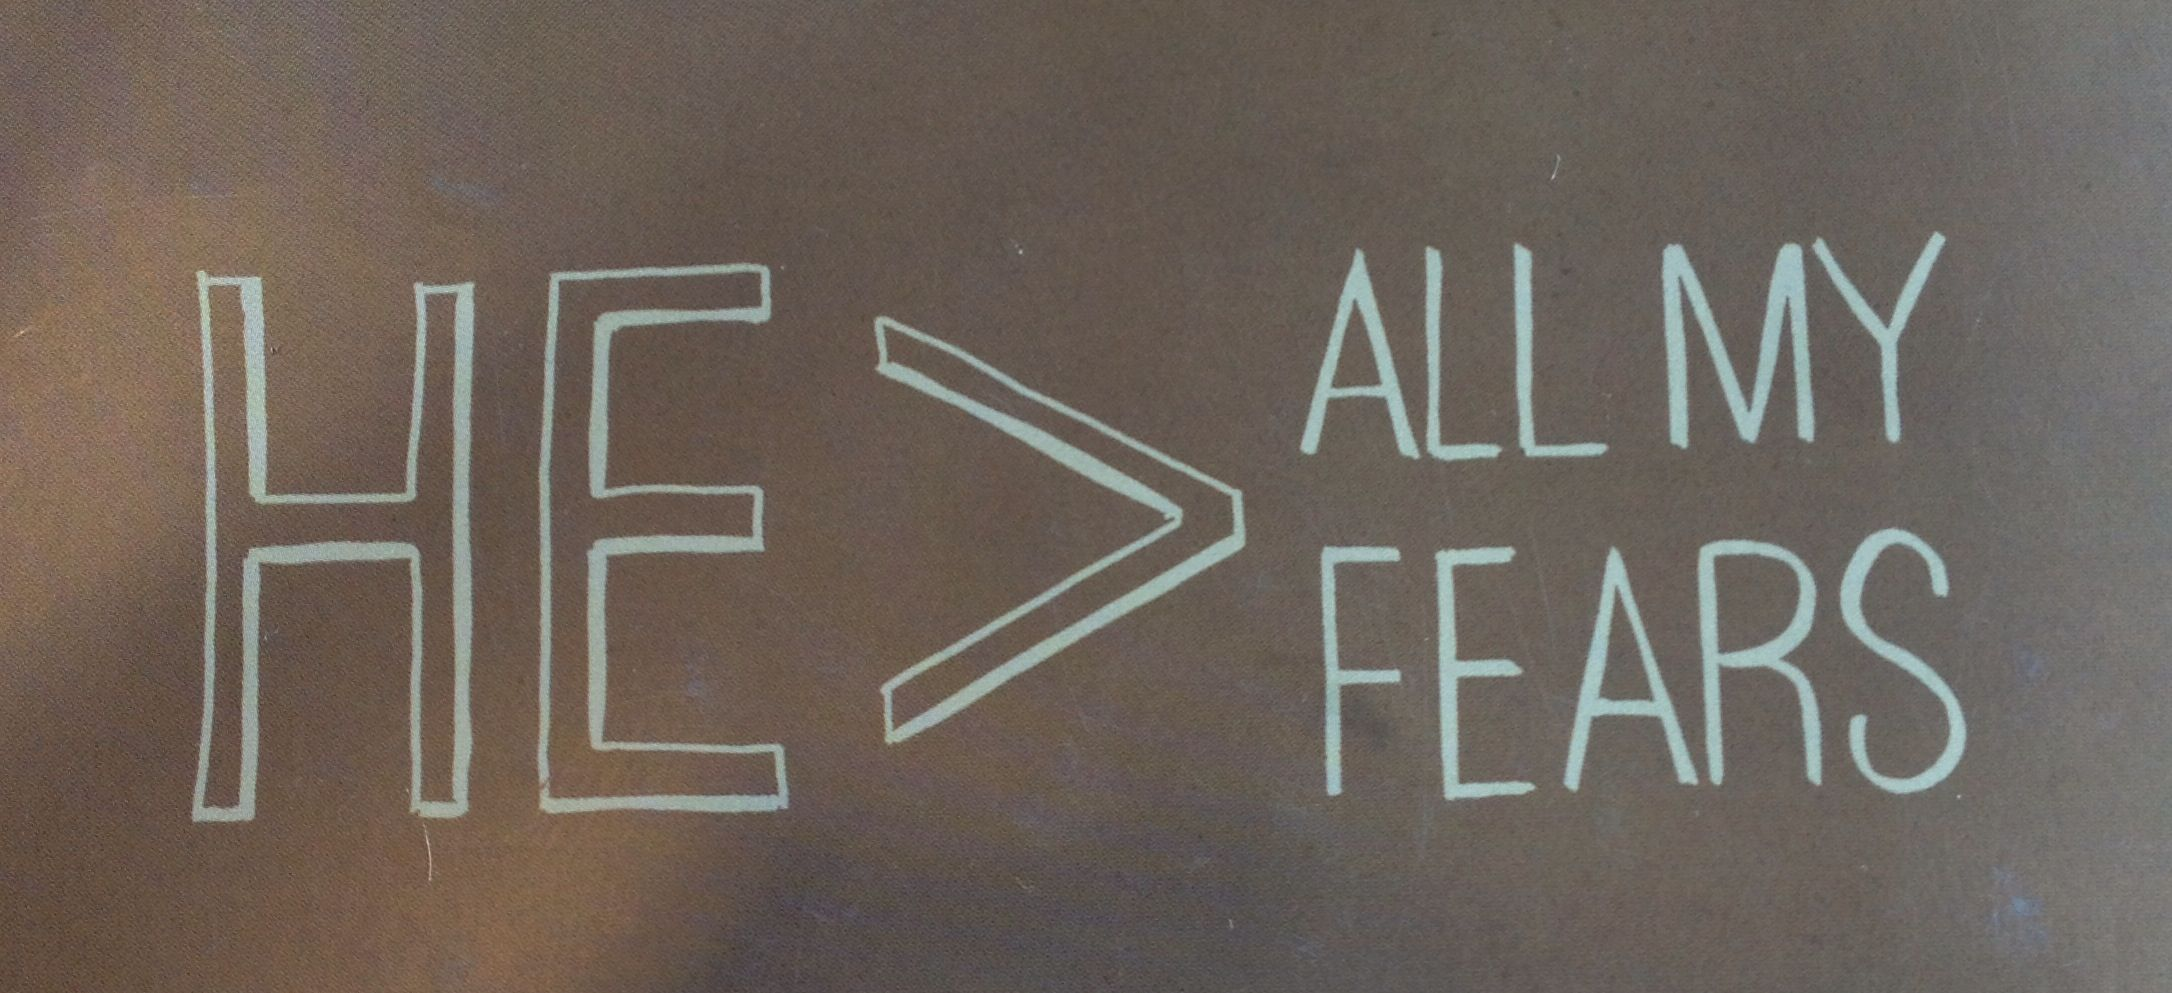 God is GREATER than ALL my fears